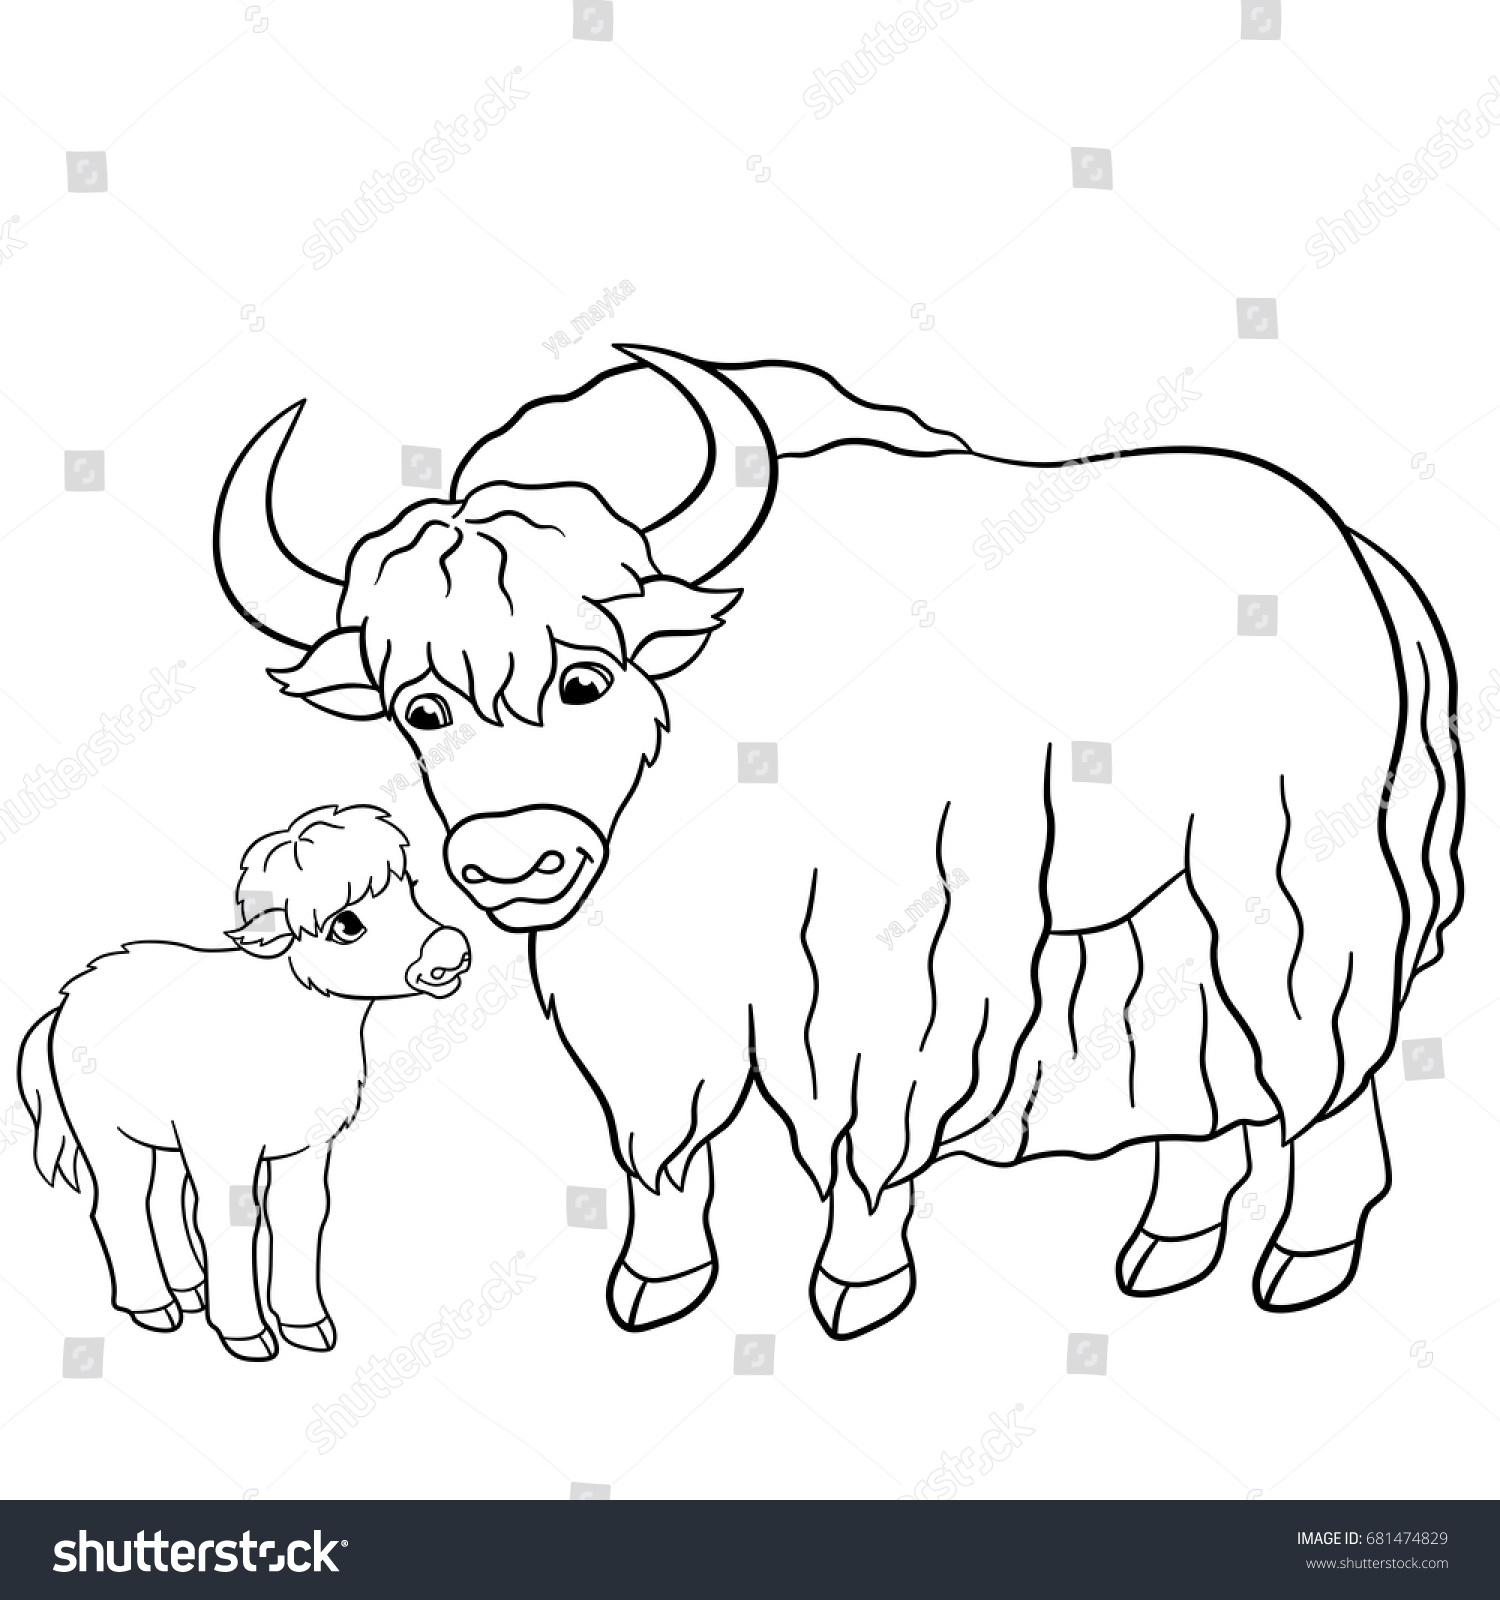 Coloring pages beautiful yak with little cute baby yak